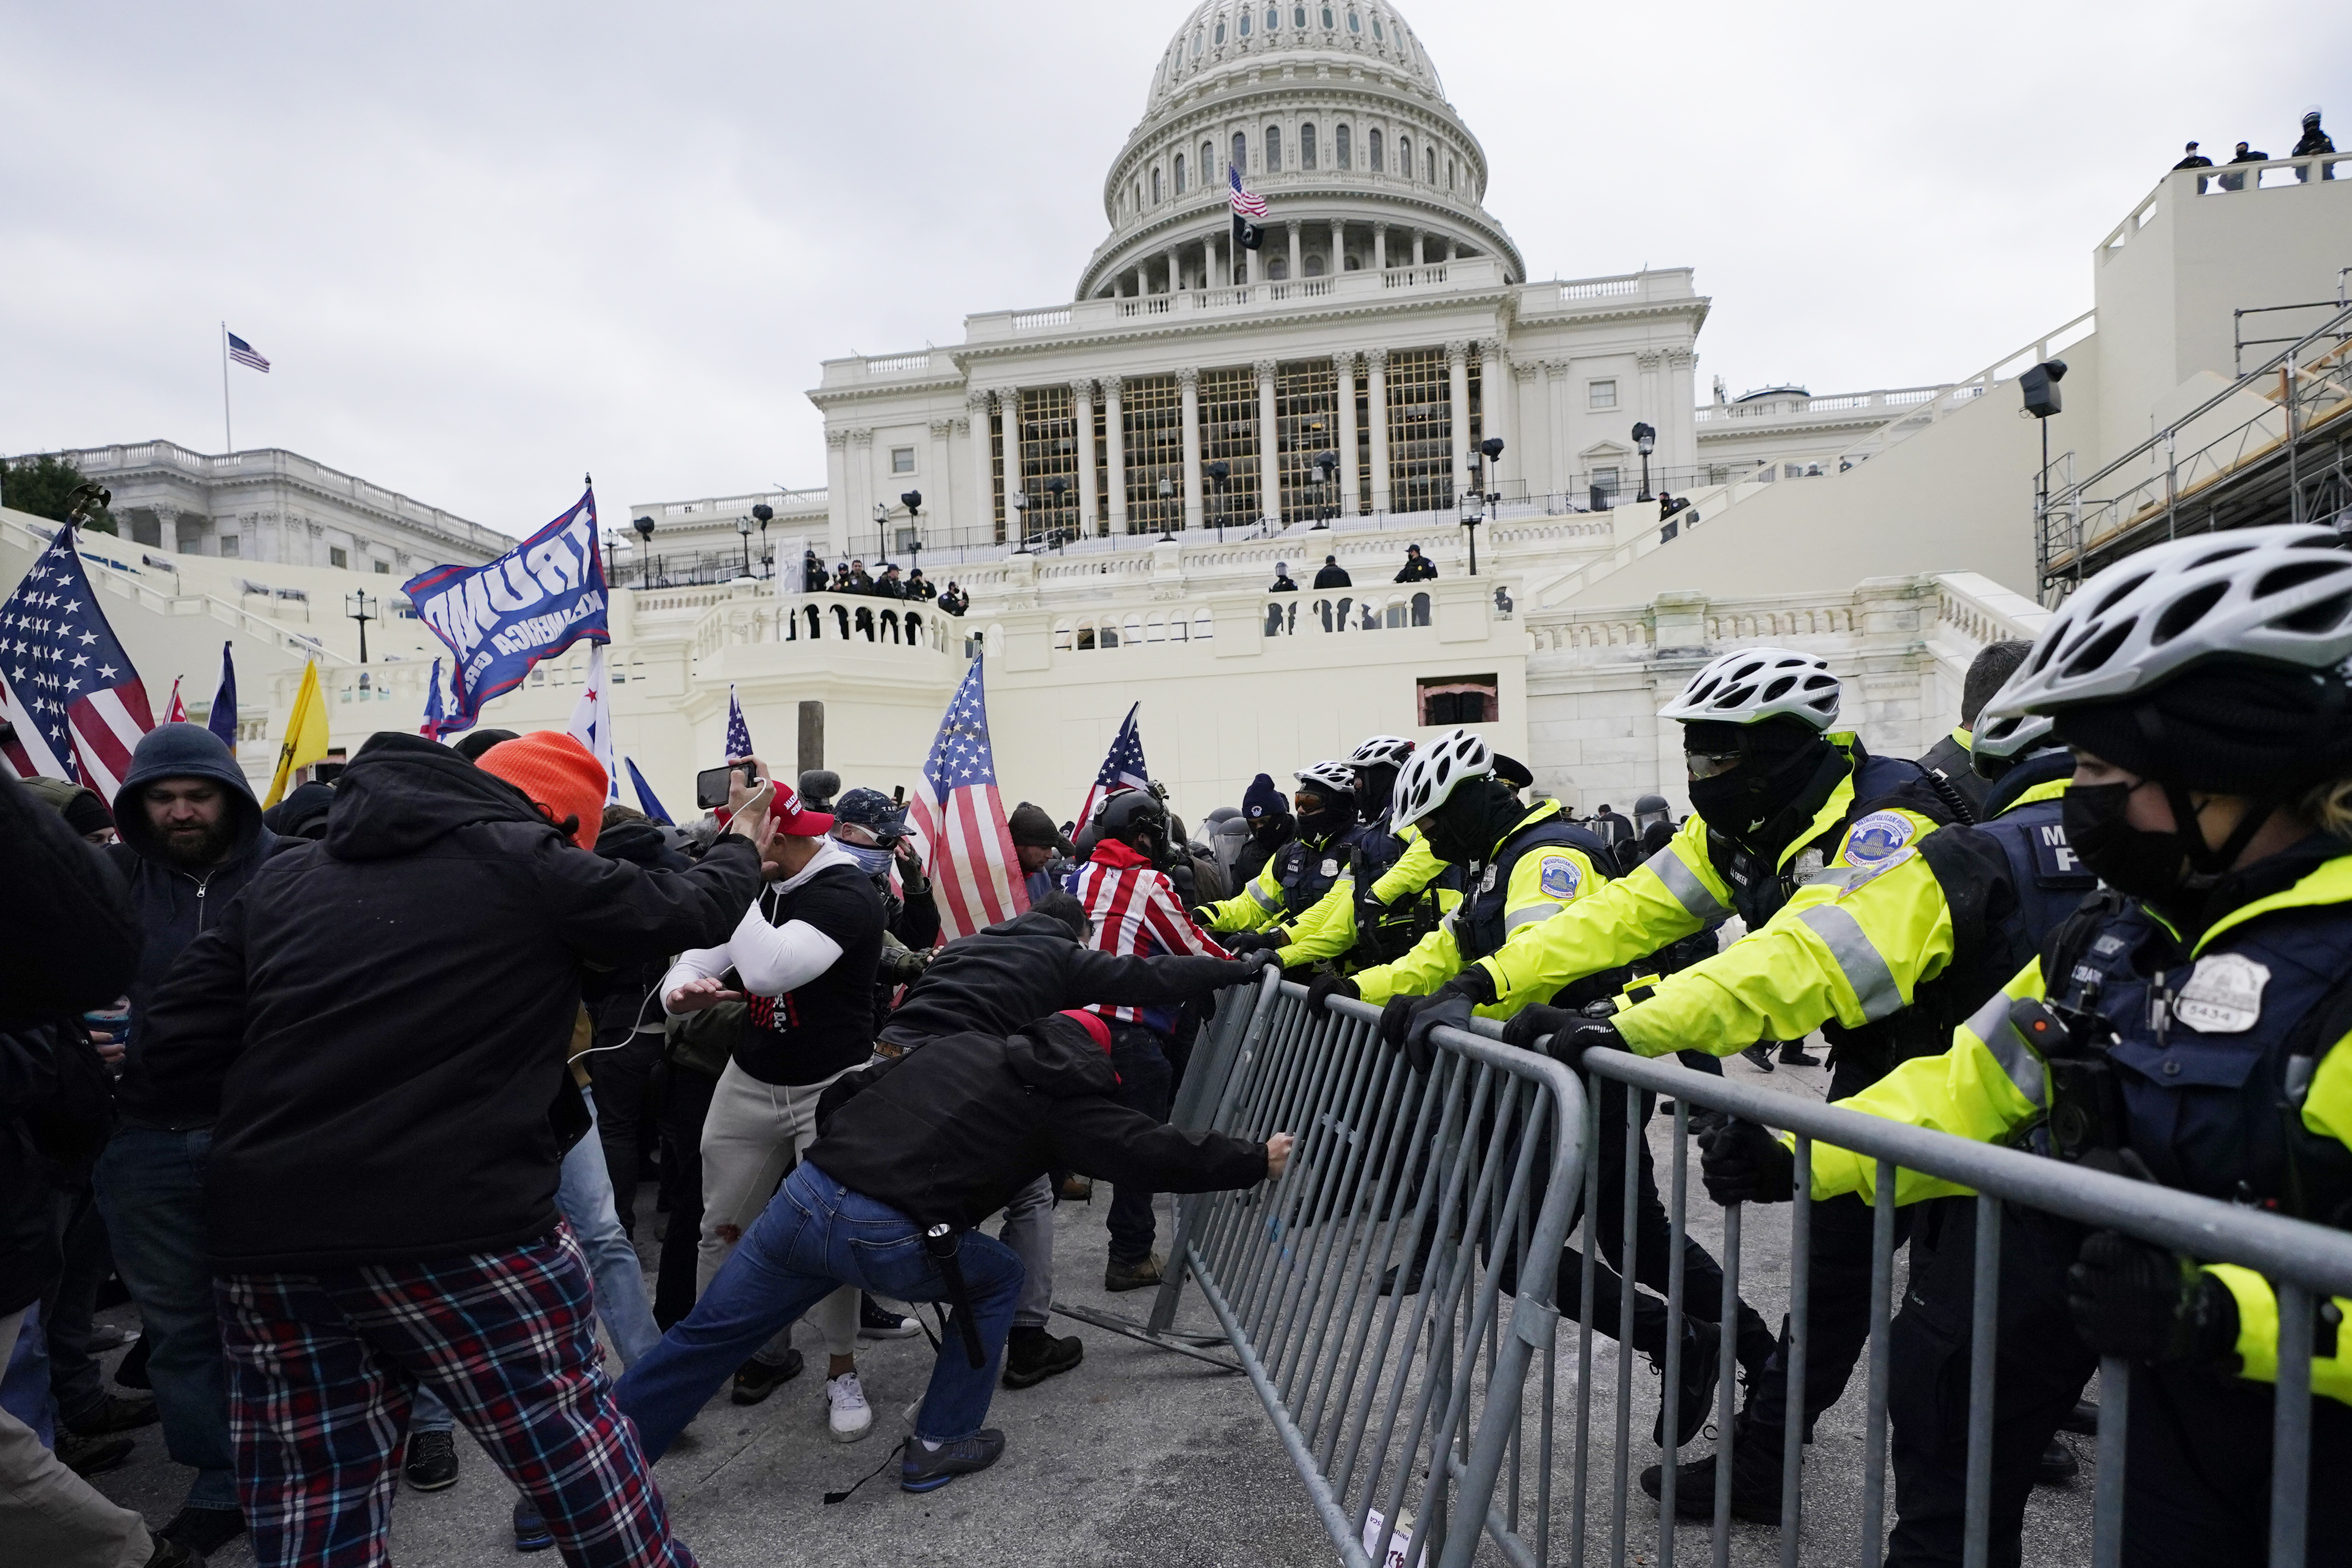 Assault on the Capitol, on January 6.